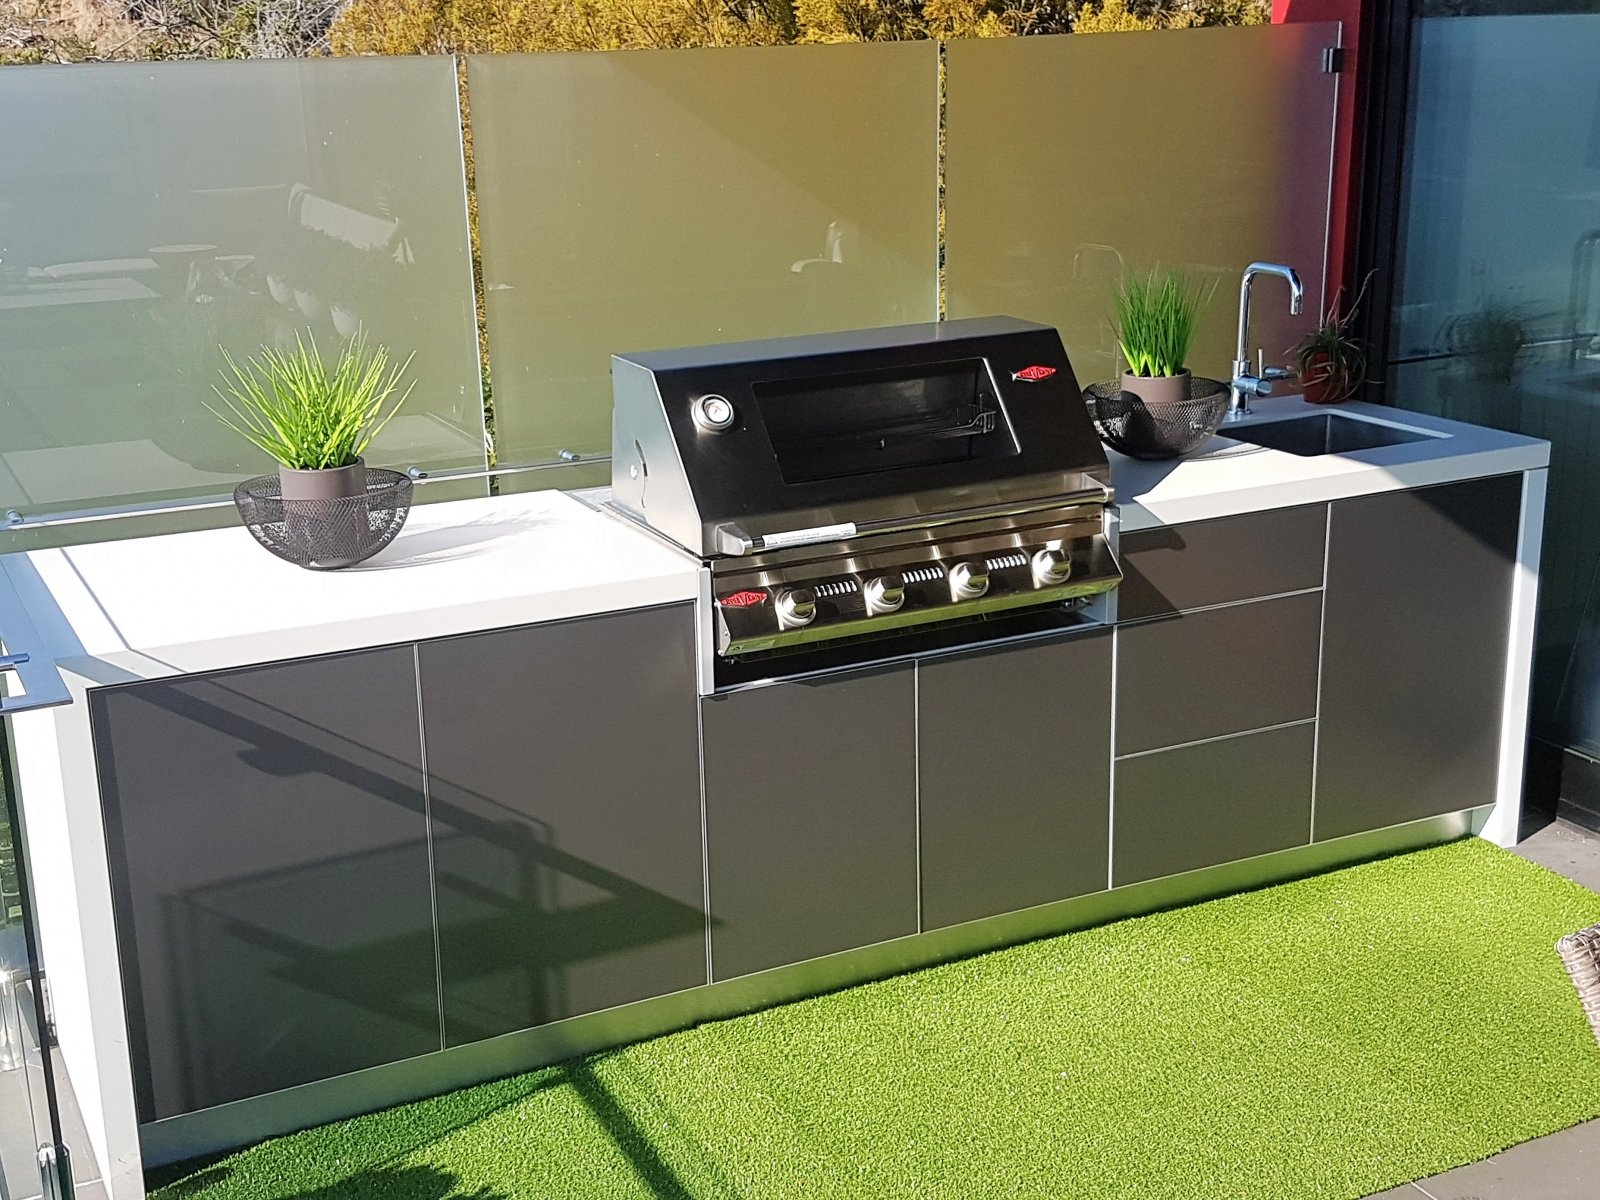 Beefeater-Signature-3000S-4-Burner-Beefeater-Outdoor-Kitchen-Metallic-Charcoal-Dekton-Zenith